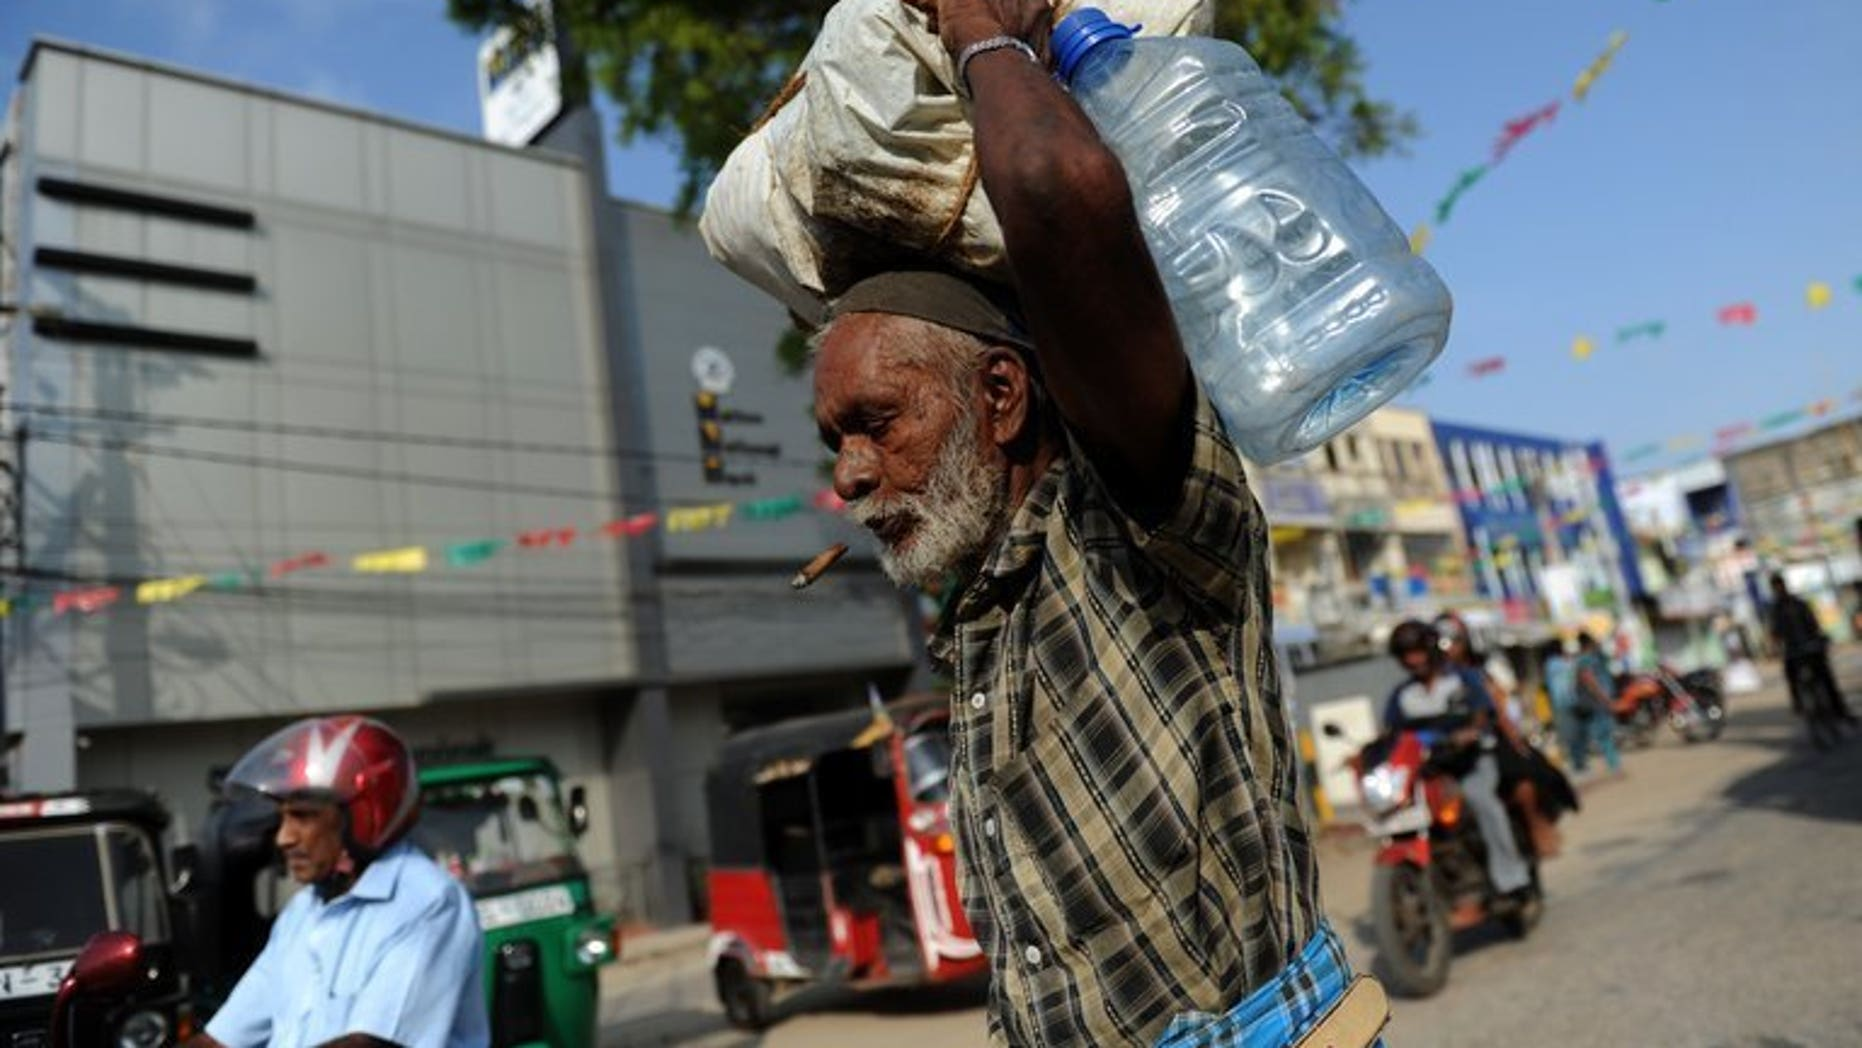 A Sri Lankan Tamil man walks through Jaffna, on May 4, 2012. India has urged Sri Lanka to honour international pledges and share political power with ethnic Tamils after Colombo signalled it will dilute an Indian-brokered devolution plan.